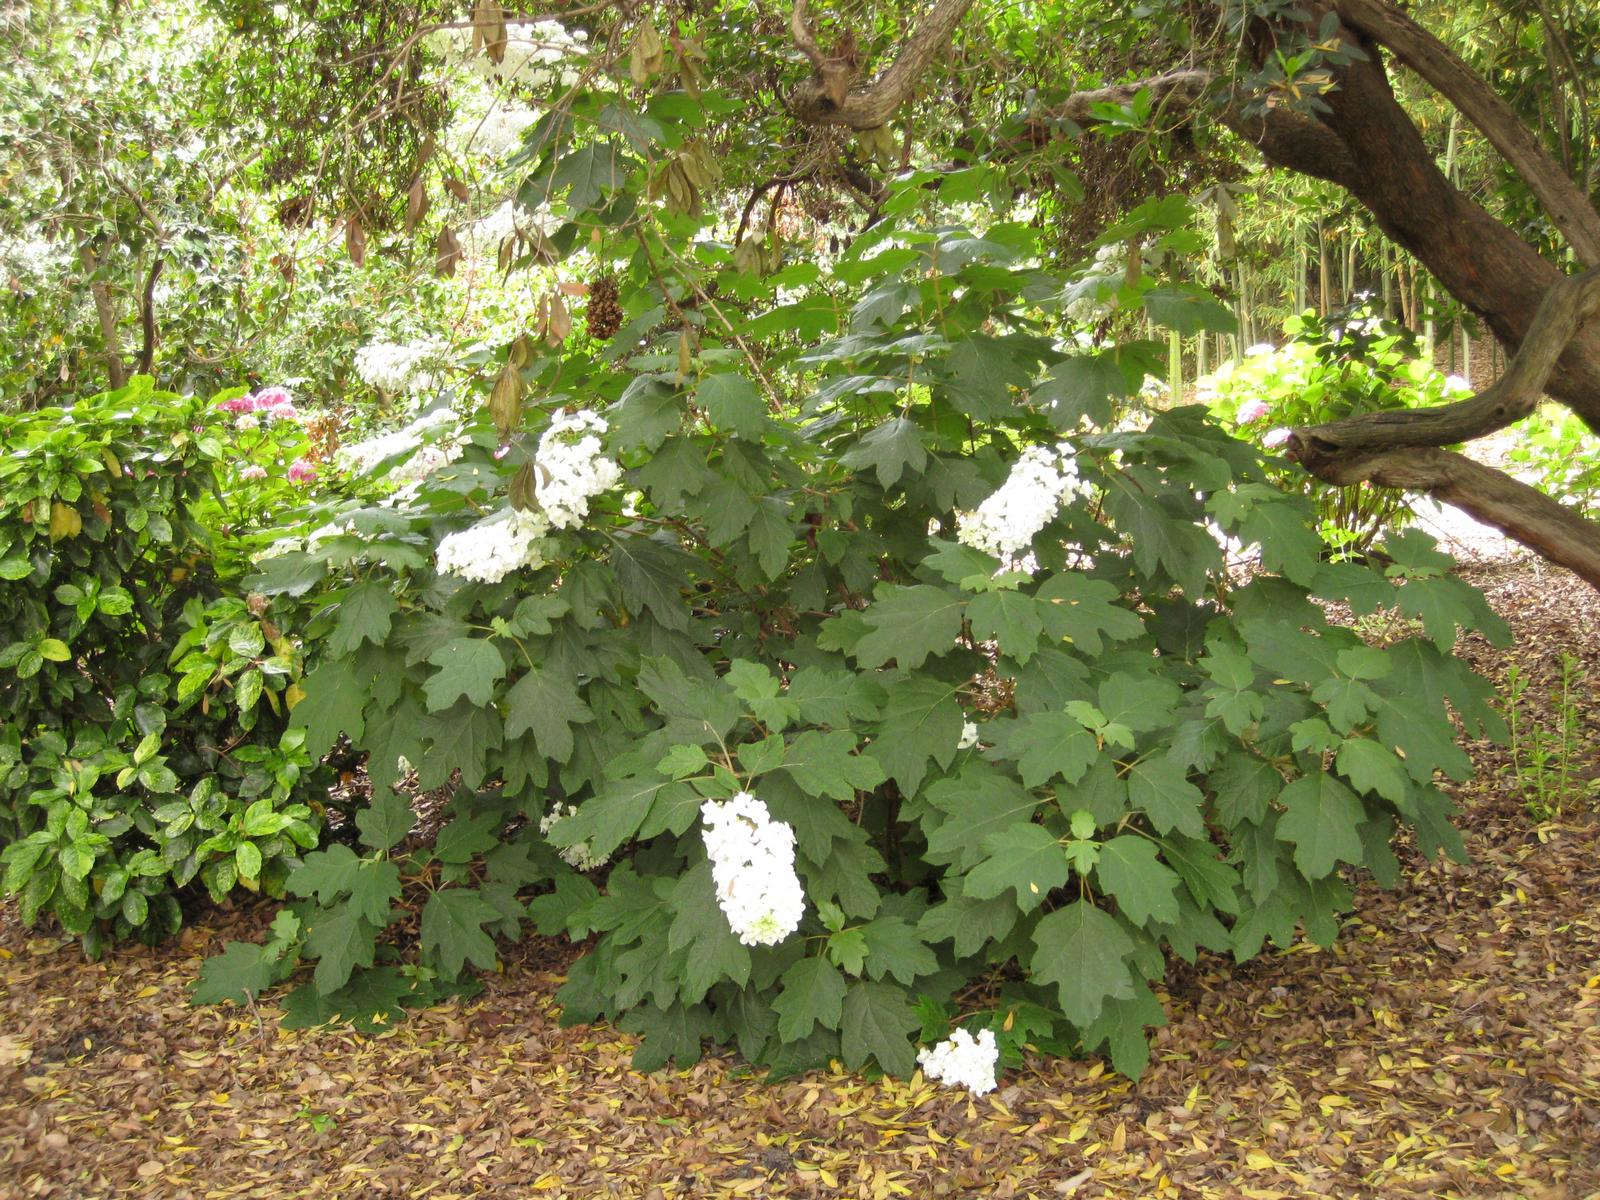 The hydrangea quercifolia, commonly known as oakleaf hydrangea